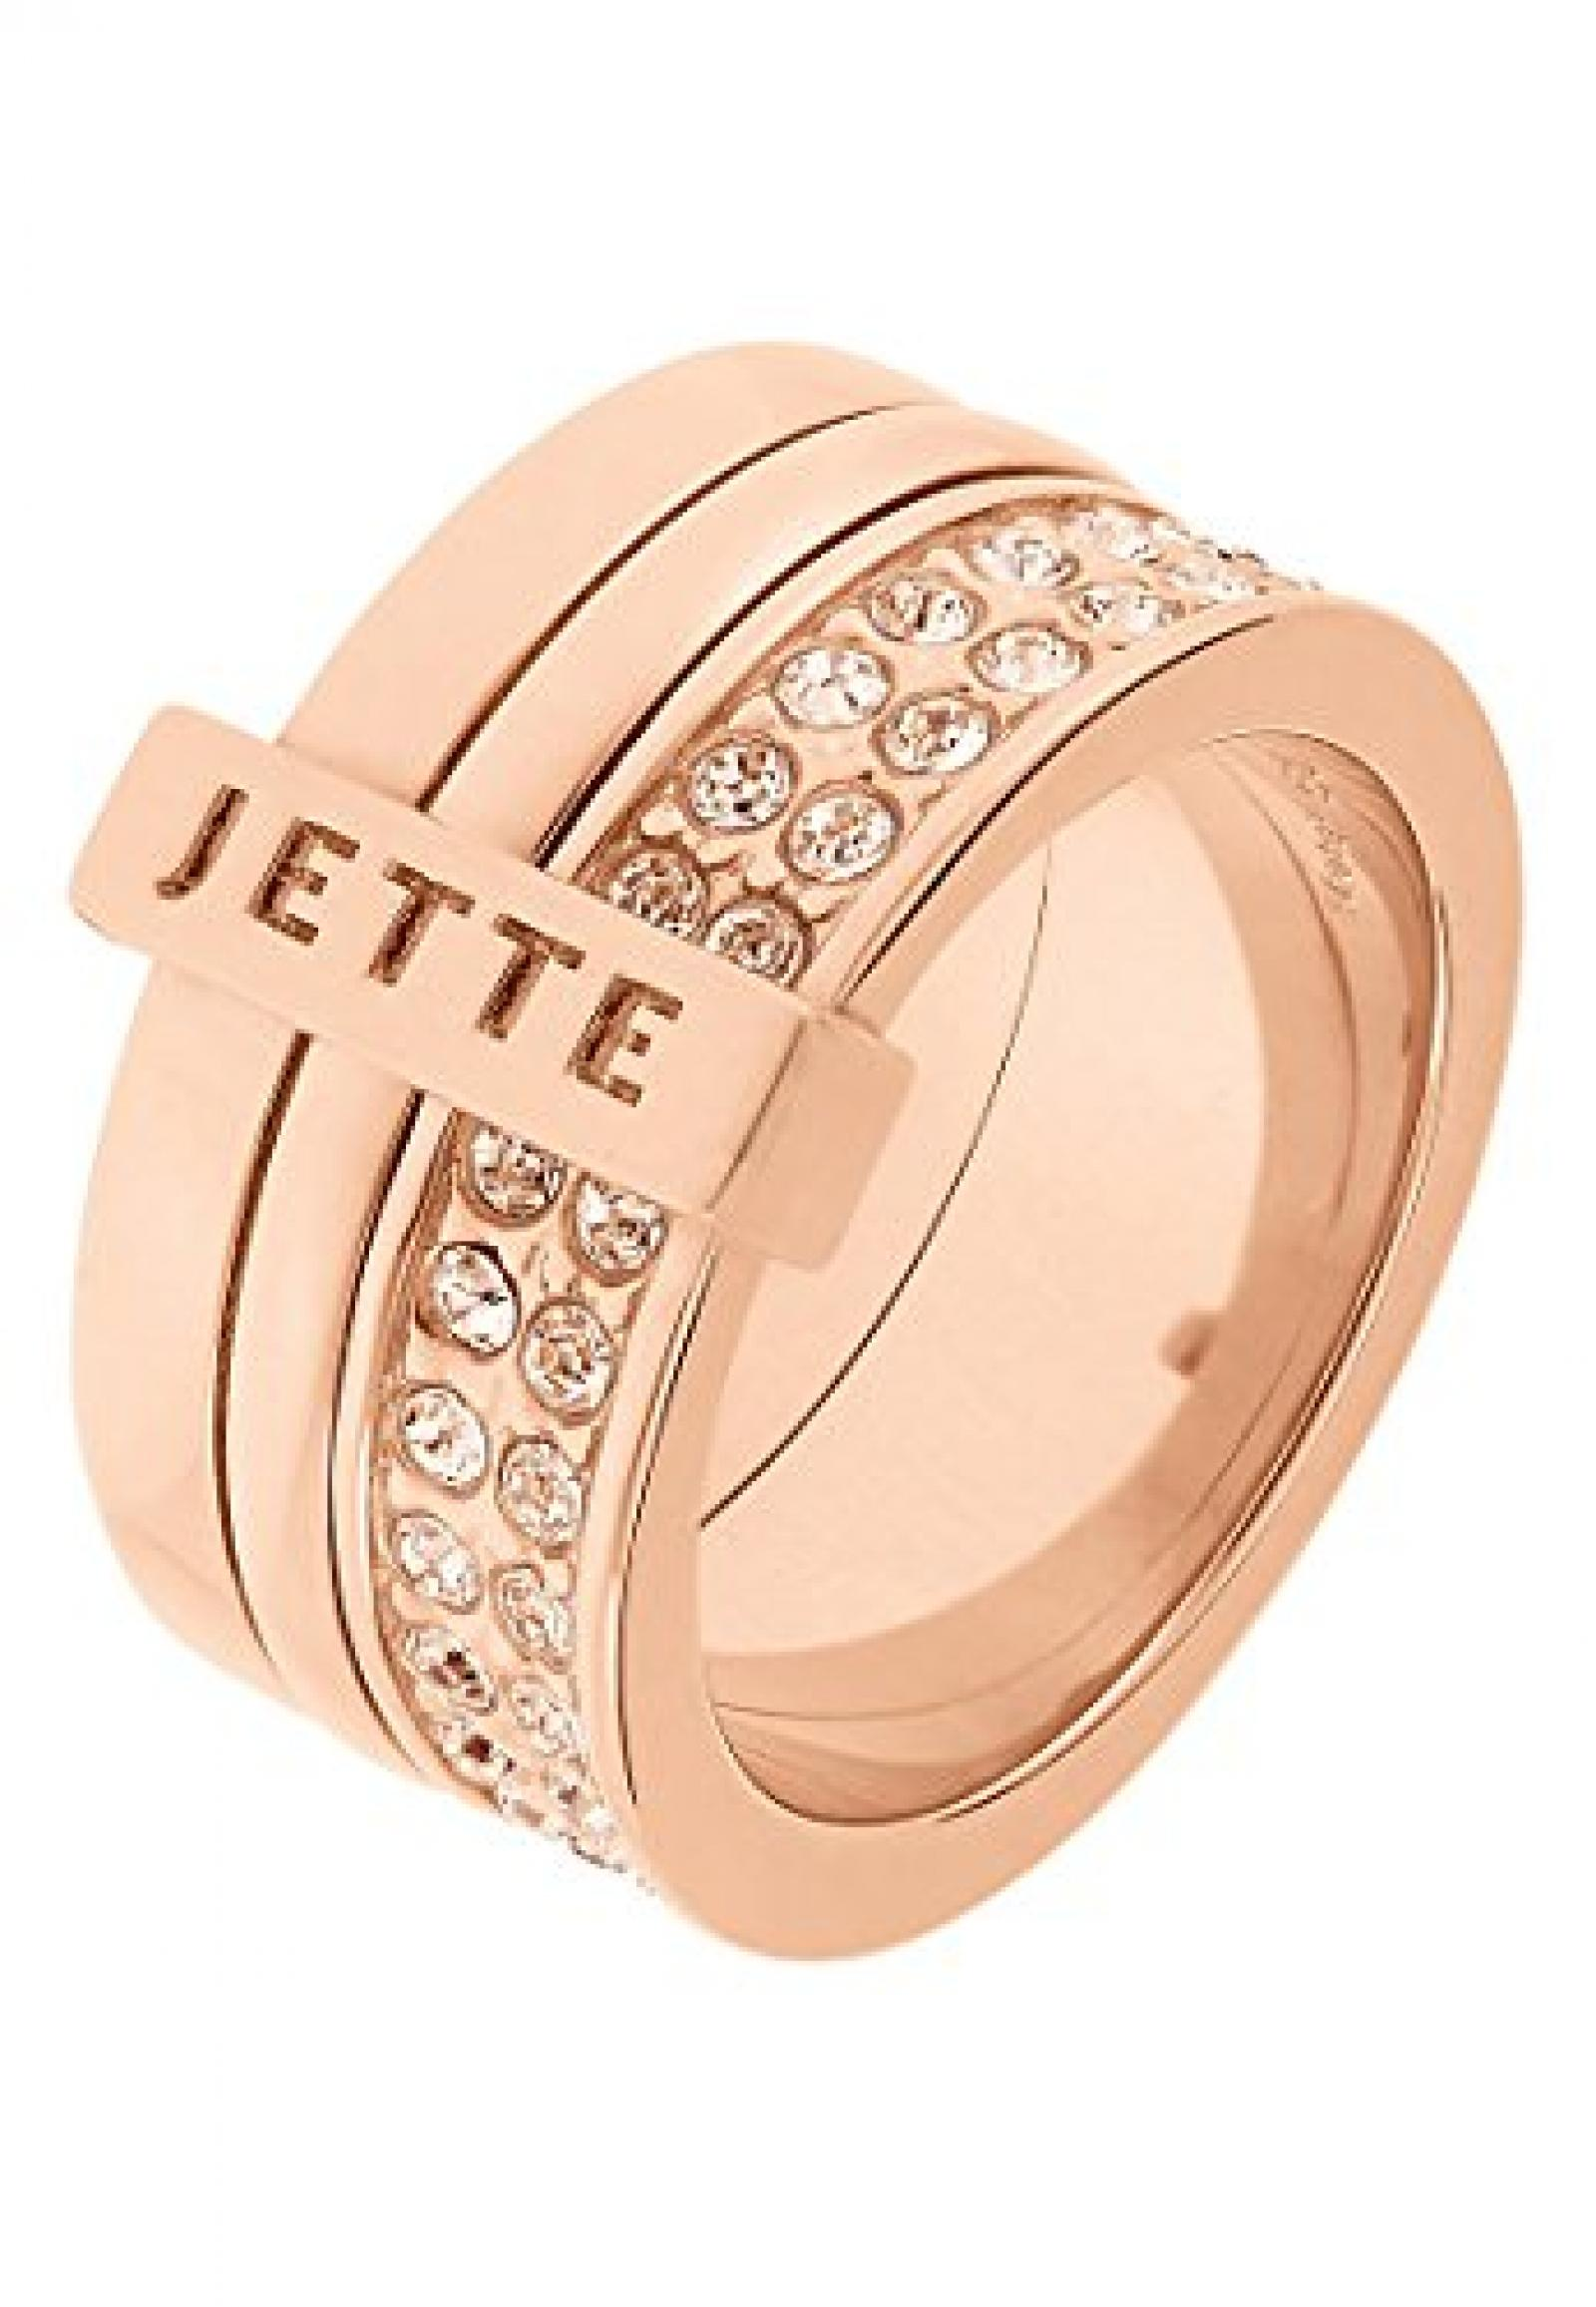 JETTE Magic Passion Damen-Ring Pure Glam Metall 80 Kristall (rosé)